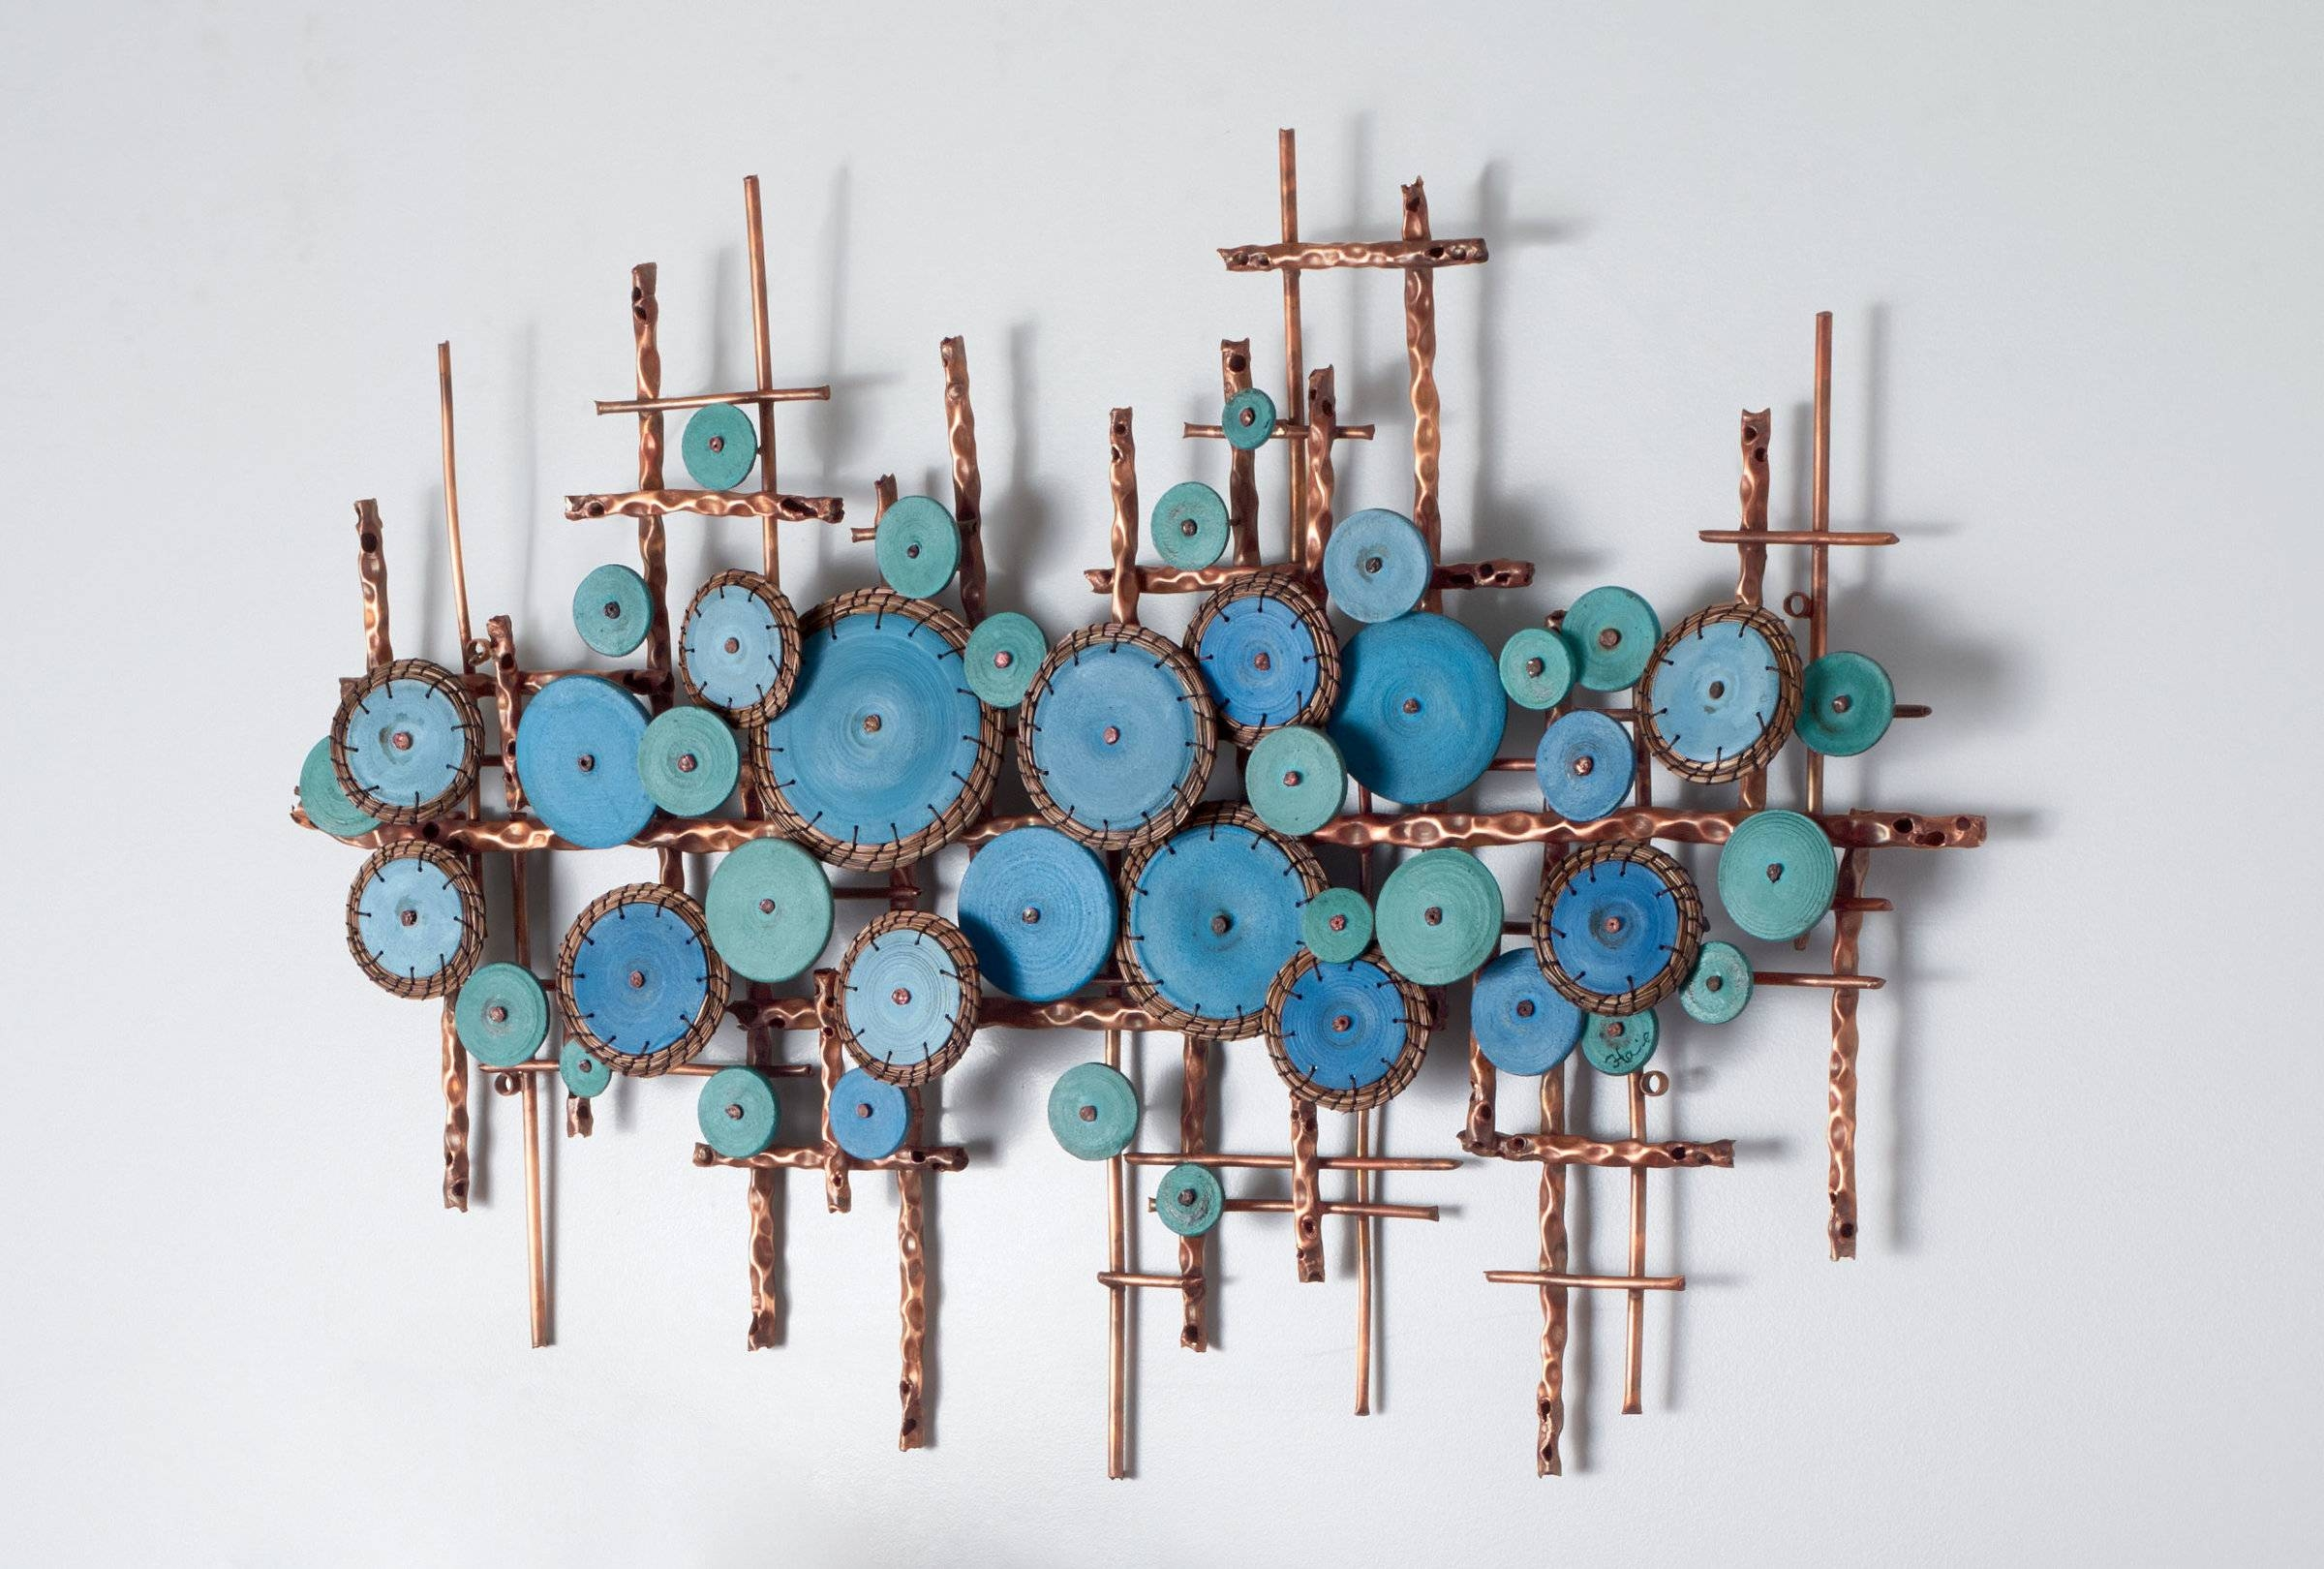 Unique Ceramic Wall Art And Sculpture | Artful Home Inside Most Up To Date  Large Ceramic